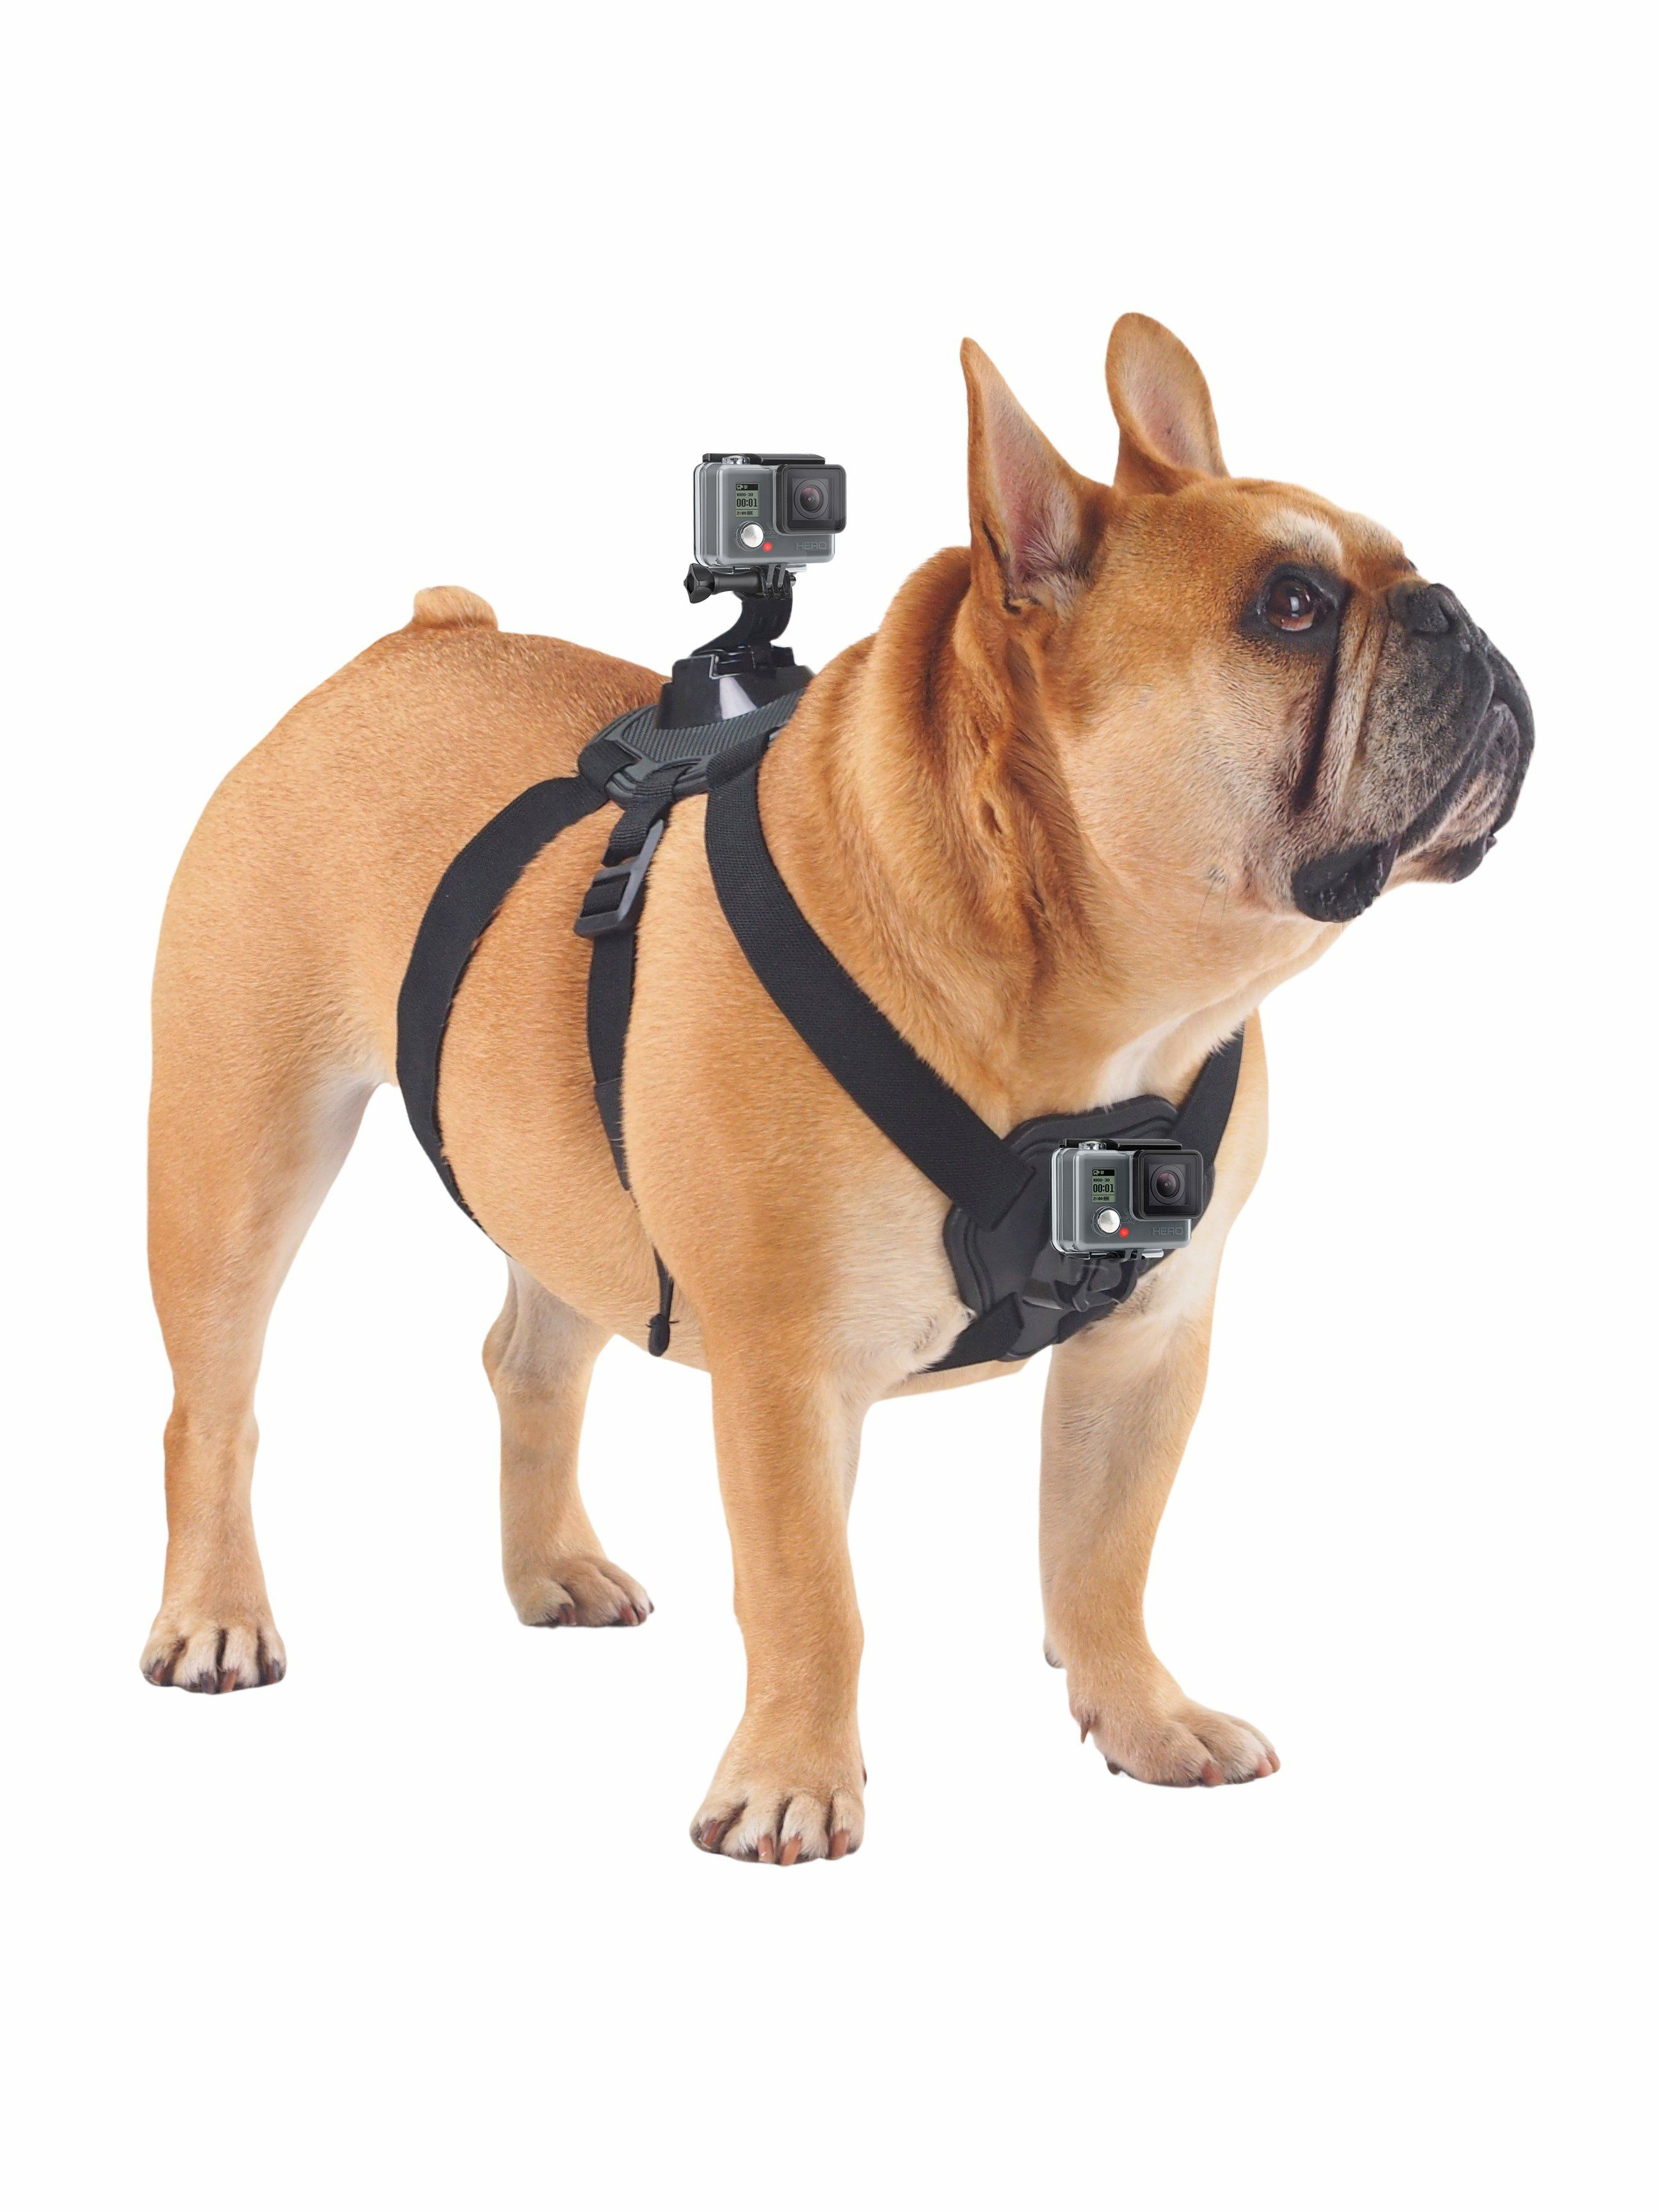 Shoot Action Dog Harness Dog Harness Dogs Dog Weight